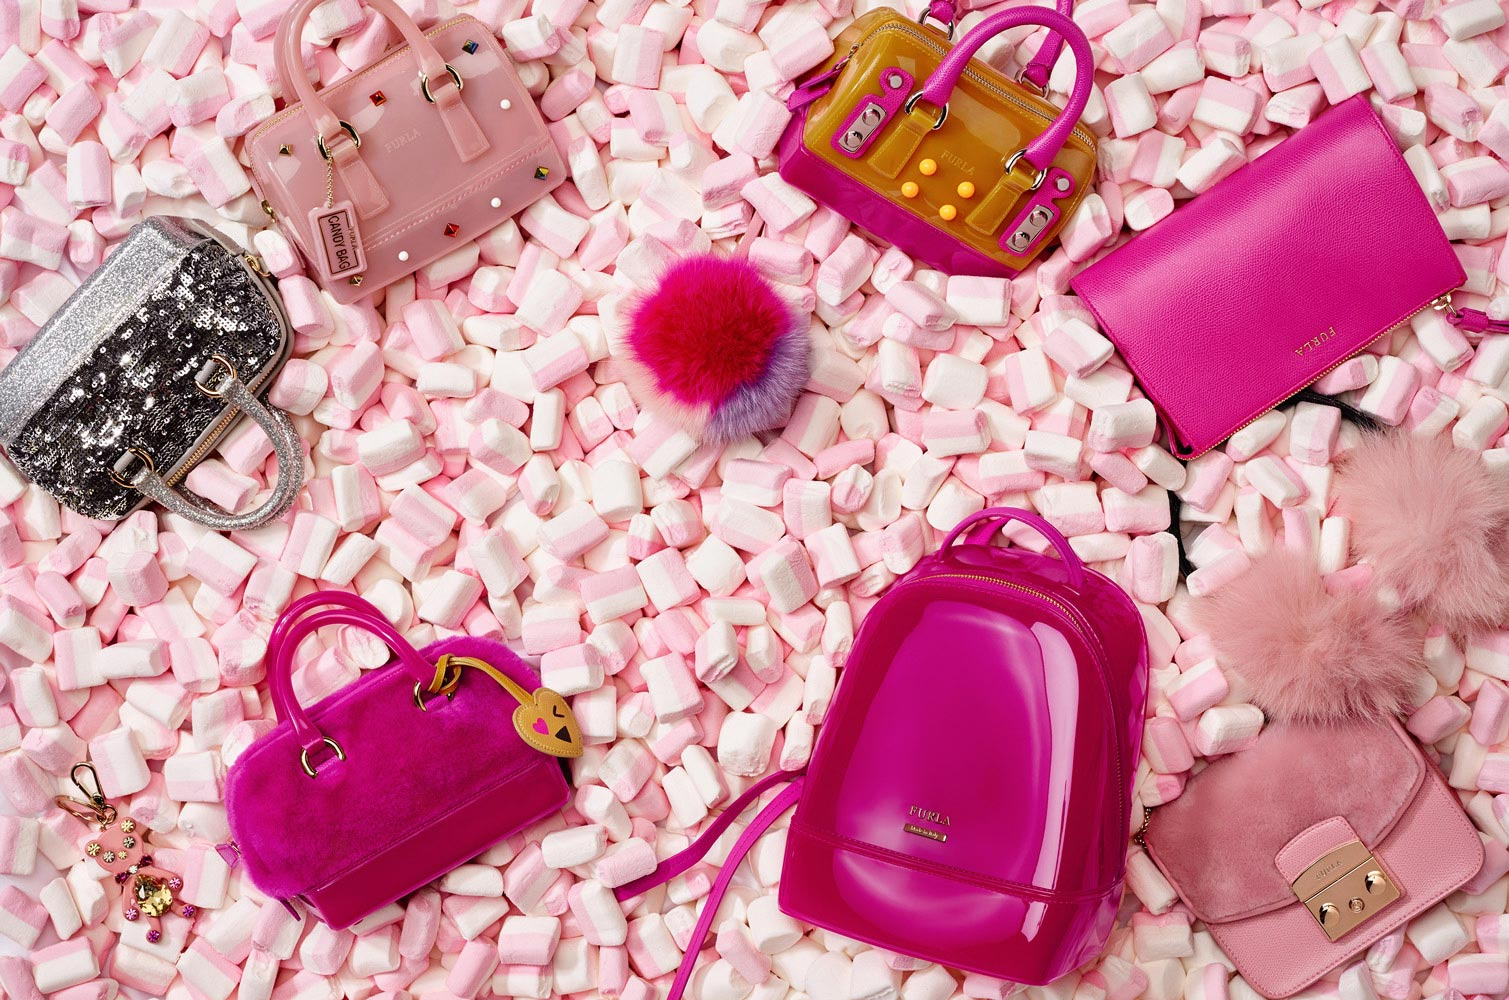 Furla catalogue still life photography ad campaign